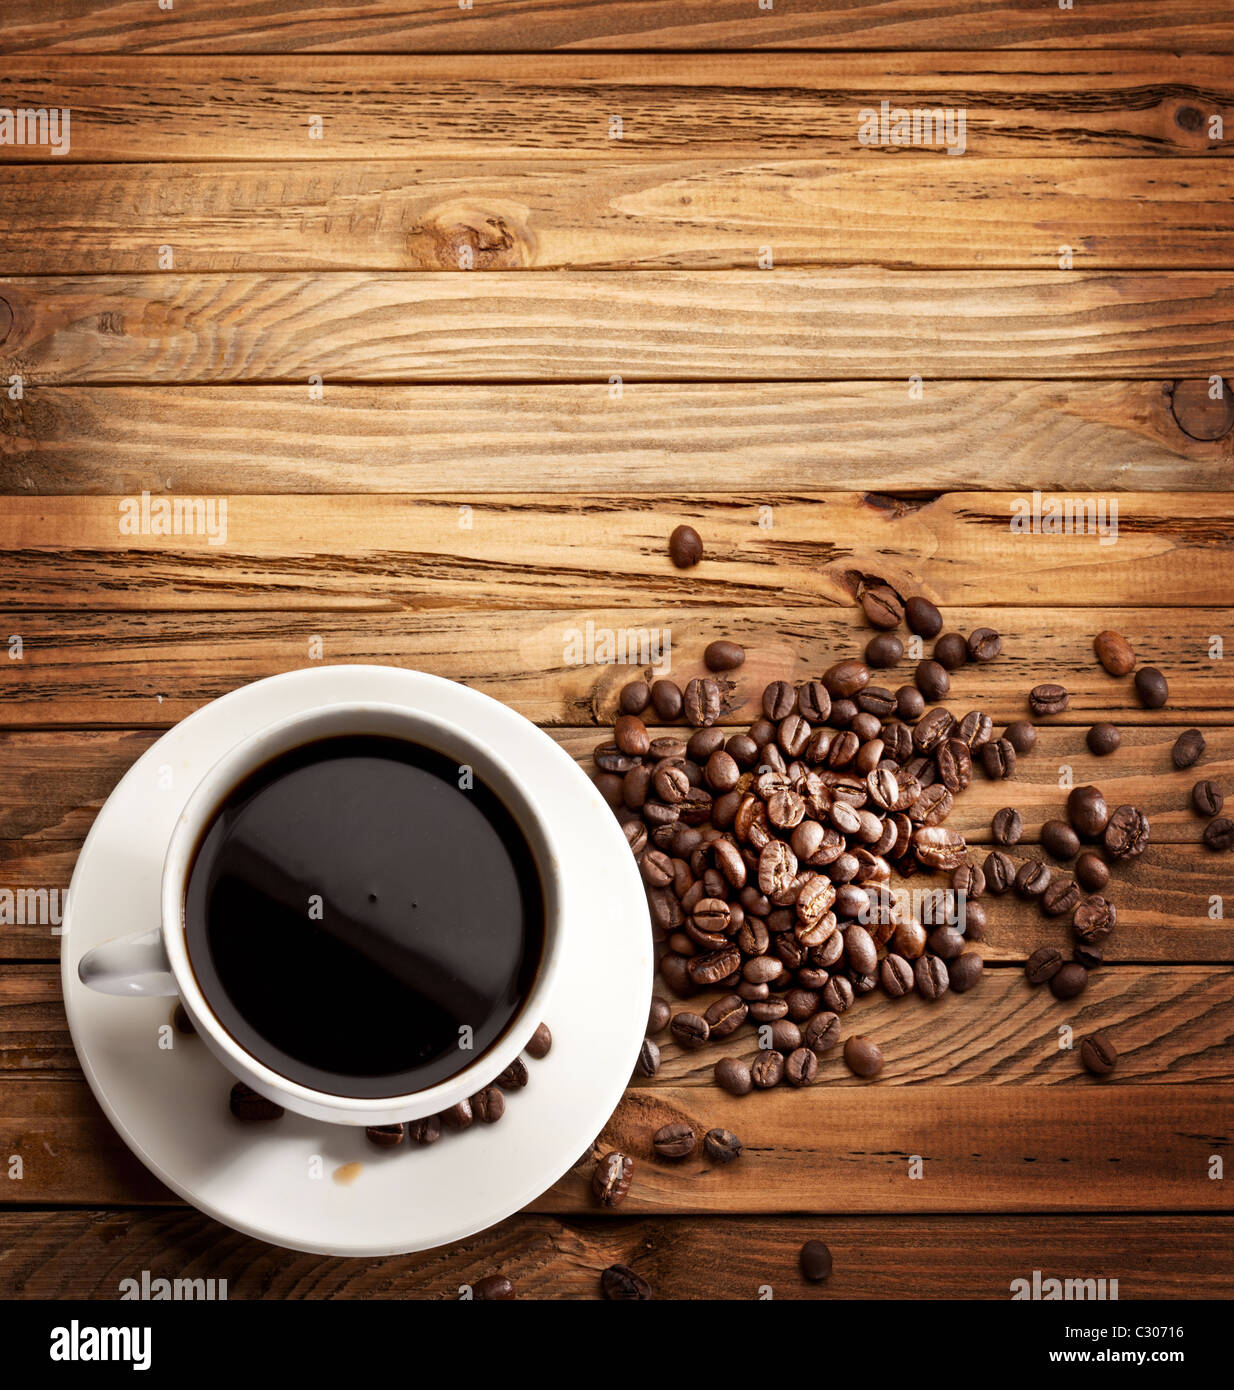 Cup of coffee. View from above on a wooden surface. Stock Photo